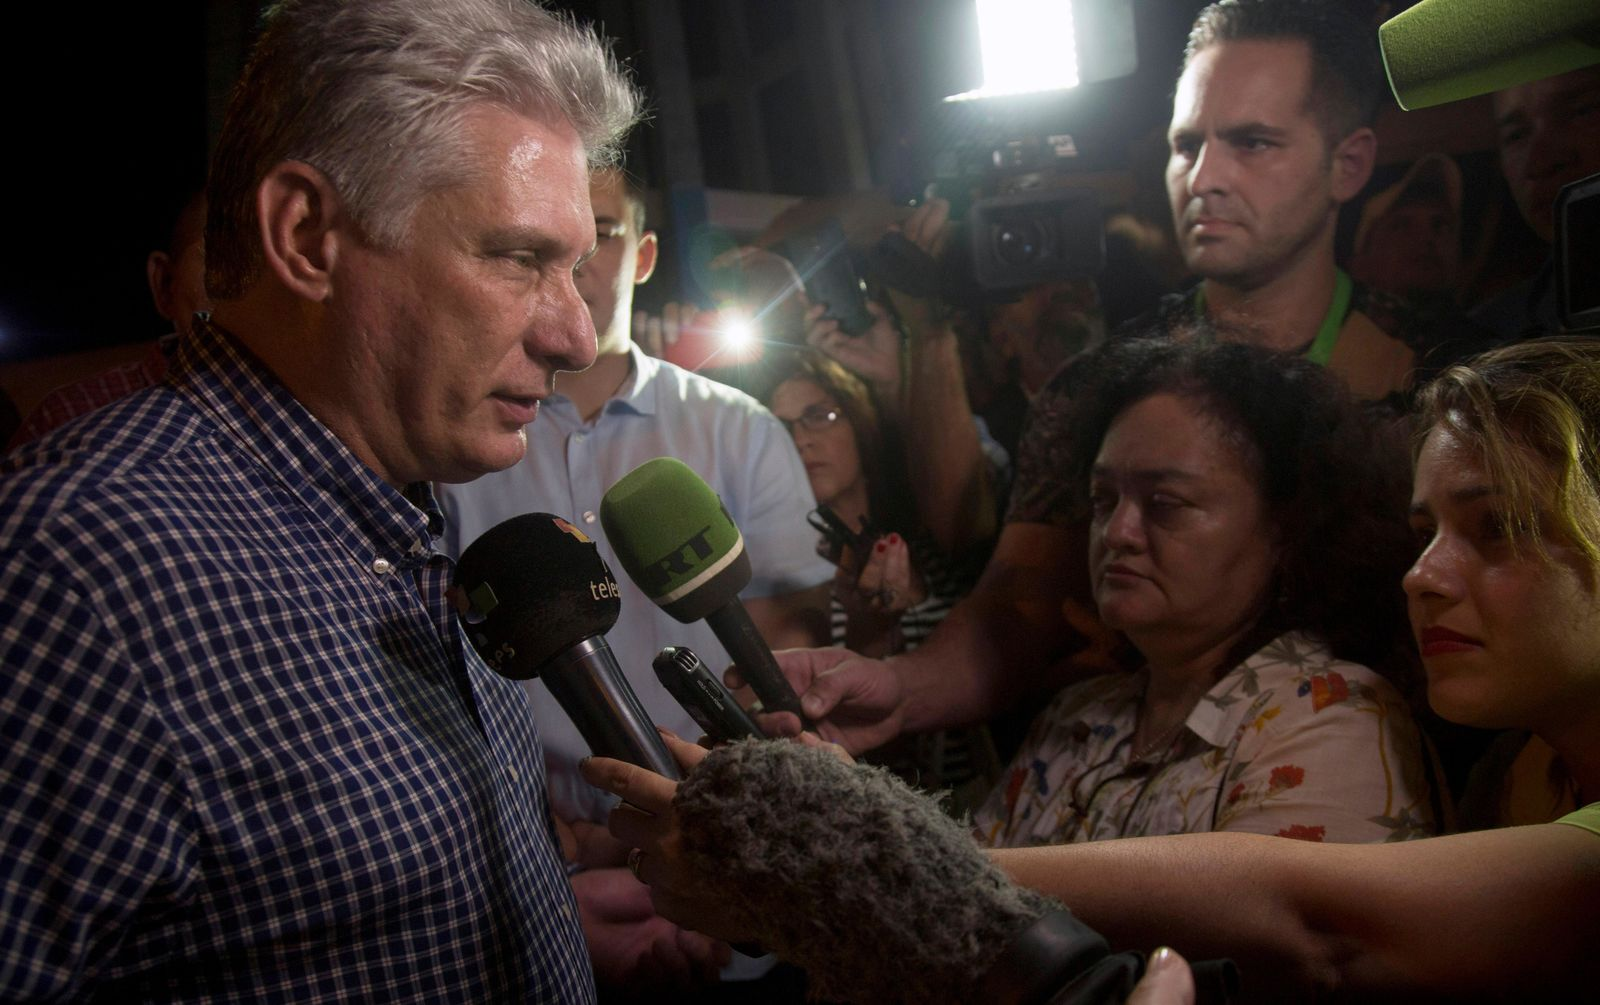 Cuba's President Miguel Diaz-Canel, left, talks to the media after a tour in Las Tunas, Cuba, Thursday, Jan. 16, 2020. (AP Photo/Ismael Francisco)